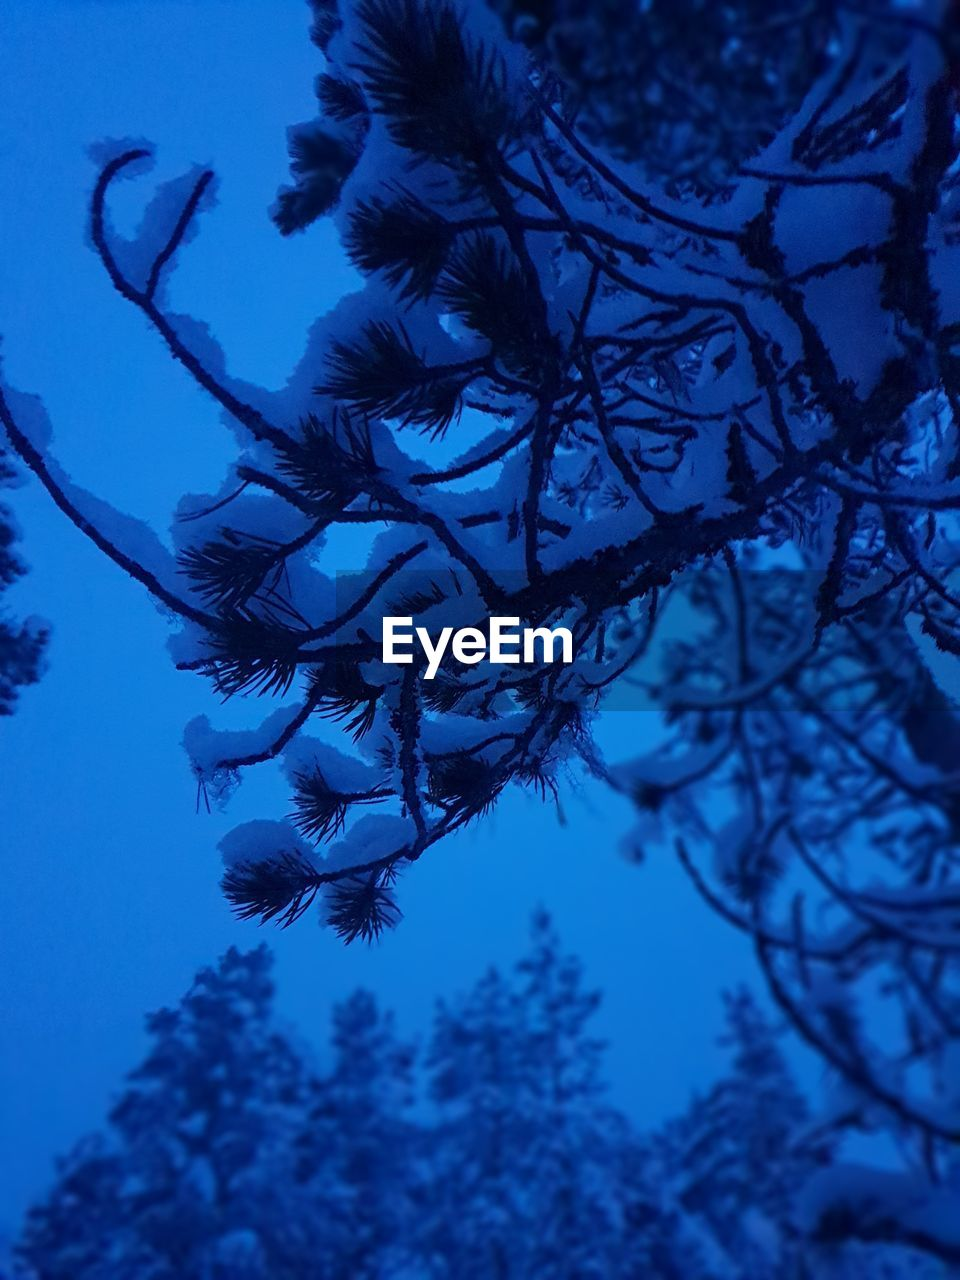 plant, tree, growth, nature, no people, beauty in nature, branch, sky, low angle view, tranquility, focus on foreground, blue, day, close-up, silhouette, scenics - nature, outdoors, selective focus, winter, dusk, coniferous tree